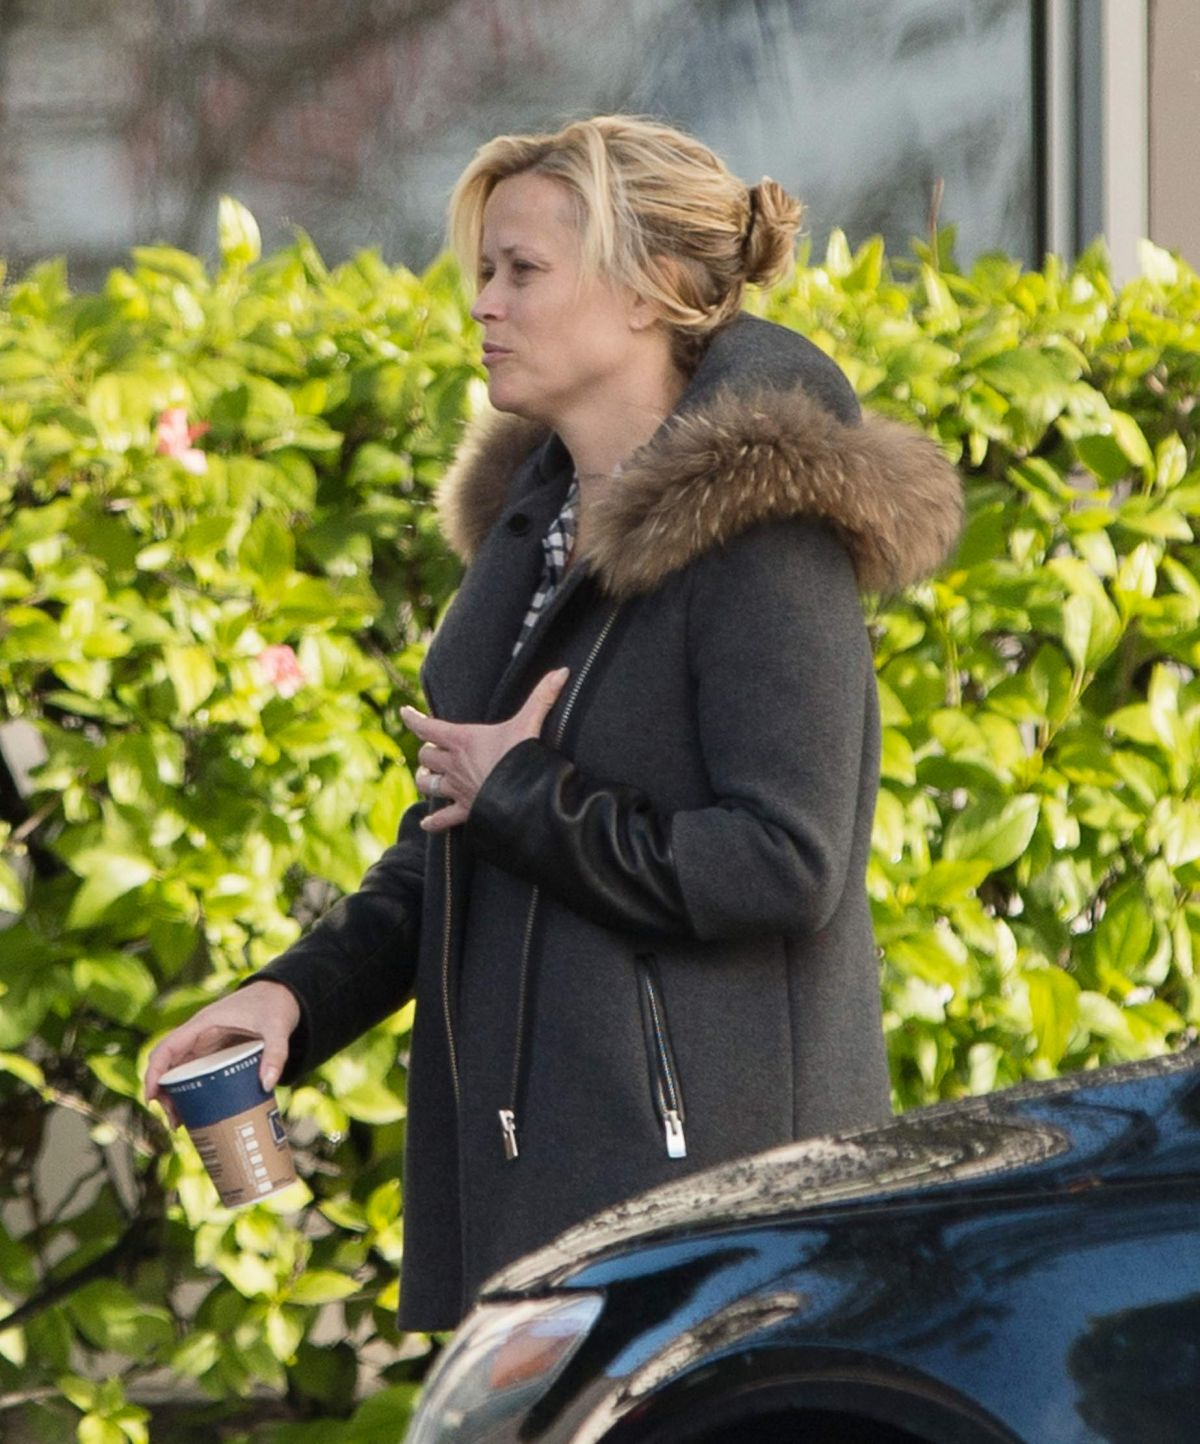 REESE WITHERSPOON Arrives on the Set of